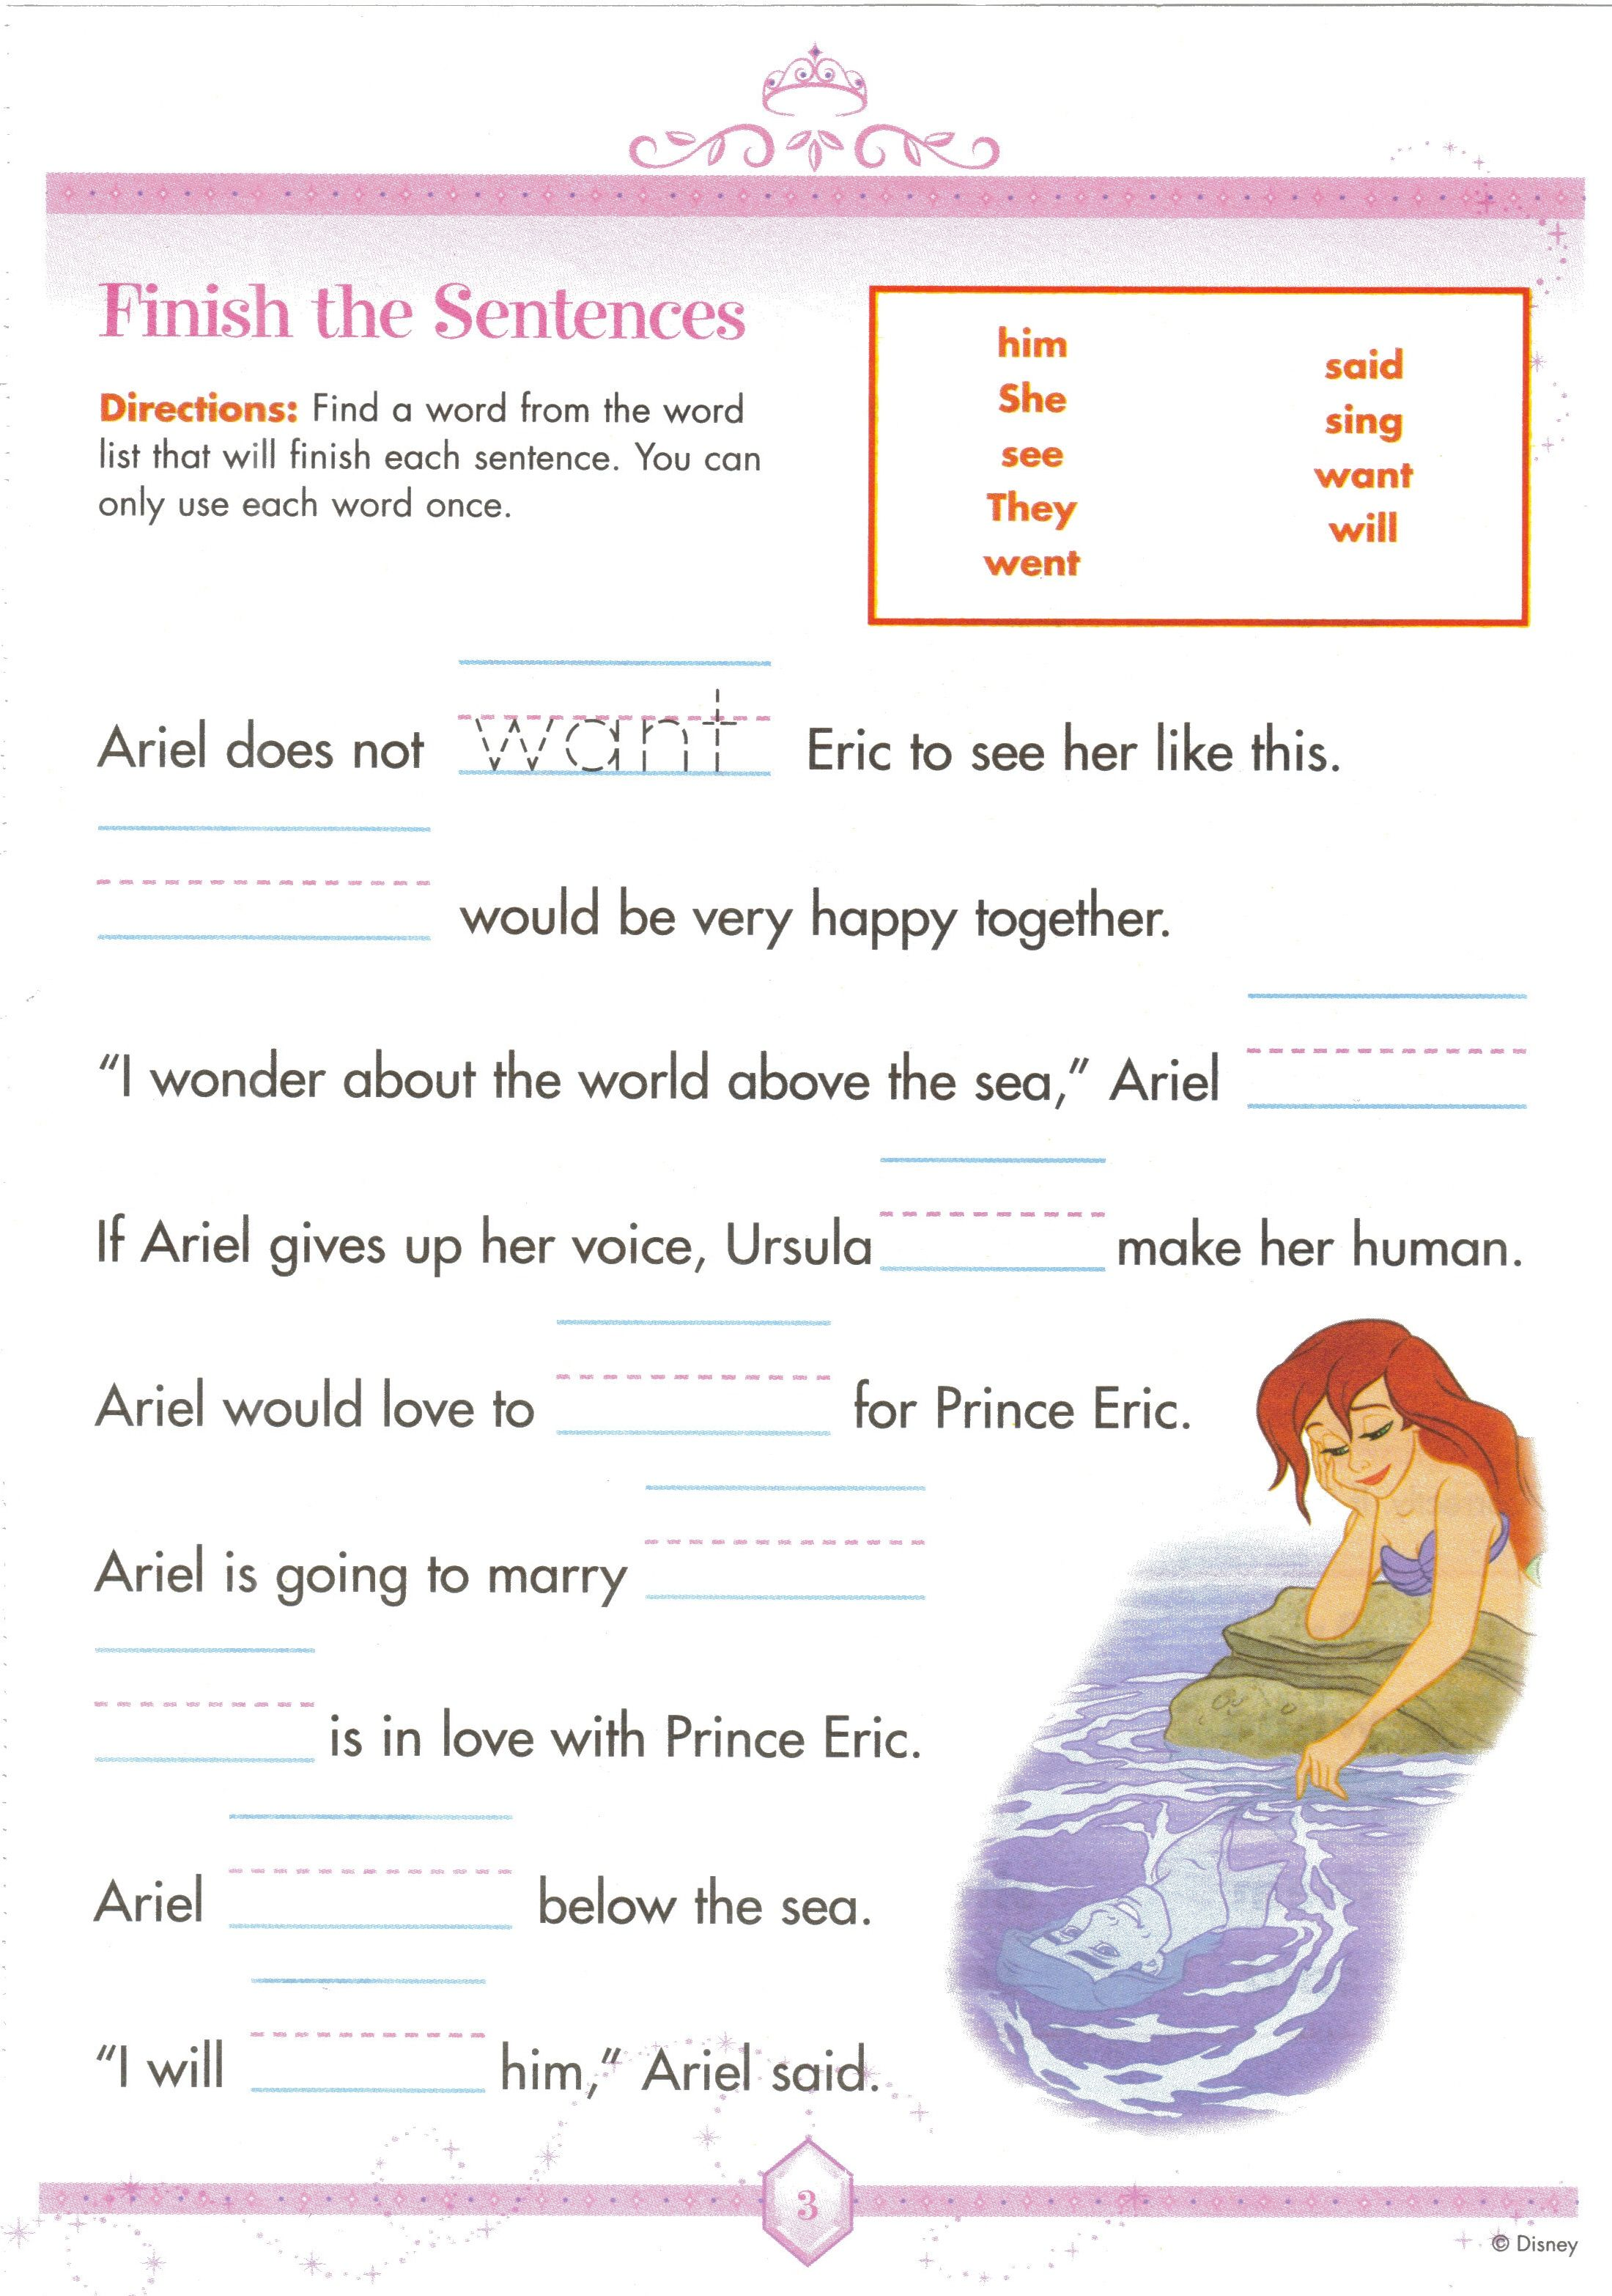 Weirdmailus  Wonderful  Images About Worksheets On Pinterest  Fun Facts For Kids  With Glamorous  Images About Worksheets On Pinterest  Fun Facts For Kids Earth Day Worksheets And Jungles With Comely Worksheets For Th Grade Also Child Support Worksheet Nm In Addition Sea Floor Spreading Worksheet Answers And Vocabulary Worksheet As Well As Printable Money Worksheets Additionally Parts Of A Microscope Worksheet Answers From Pinterestcom With Weirdmailus  Glamorous  Images About Worksheets On Pinterest  Fun Facts For Kids  With Comely  Images About Worksheets On Pinterest  Fun Facts For Kids Earth Day Worksheets And Jungles And Wonderful Worksheets For Th Grade Also Child Support Worksheet Nm In Addition Sea Floor Spreading Worksheet Answers From Pinterestcom